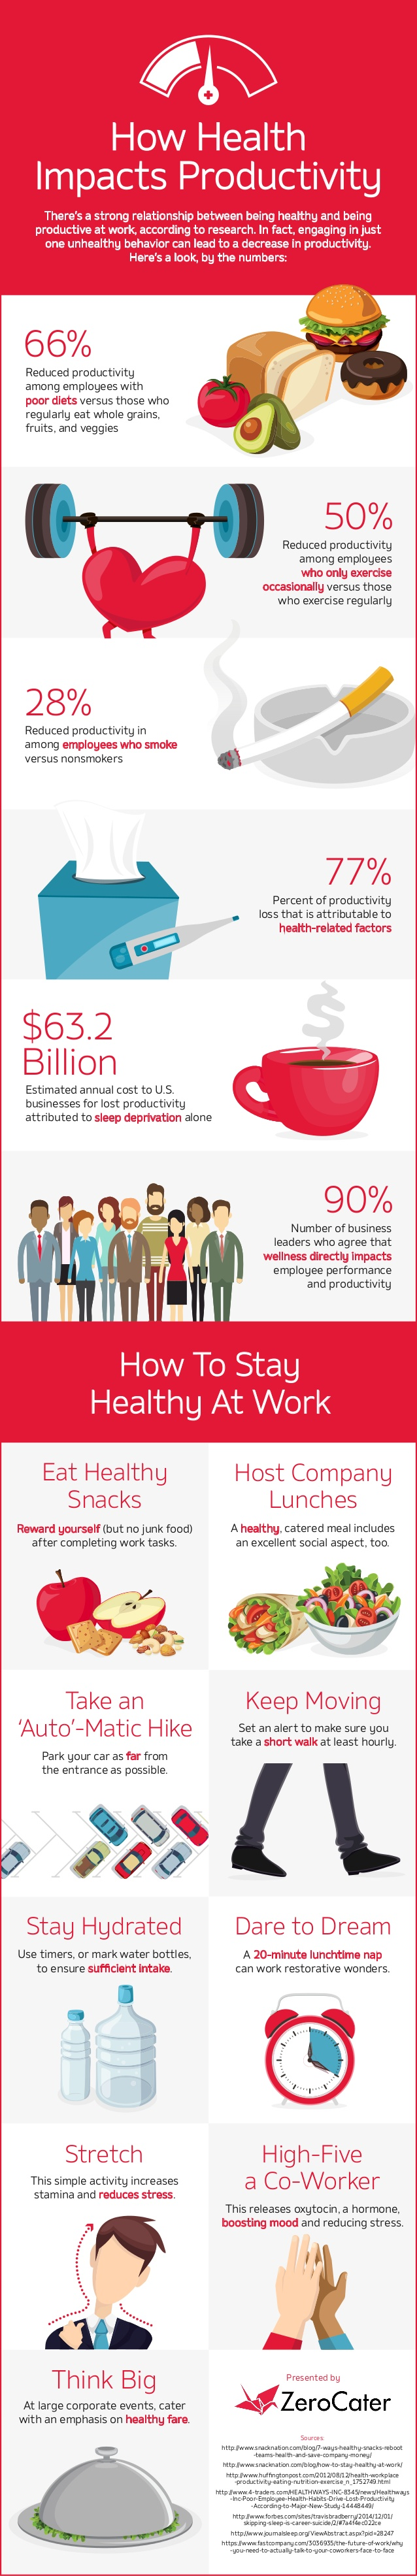 how-health-impacts-productivity-1-638